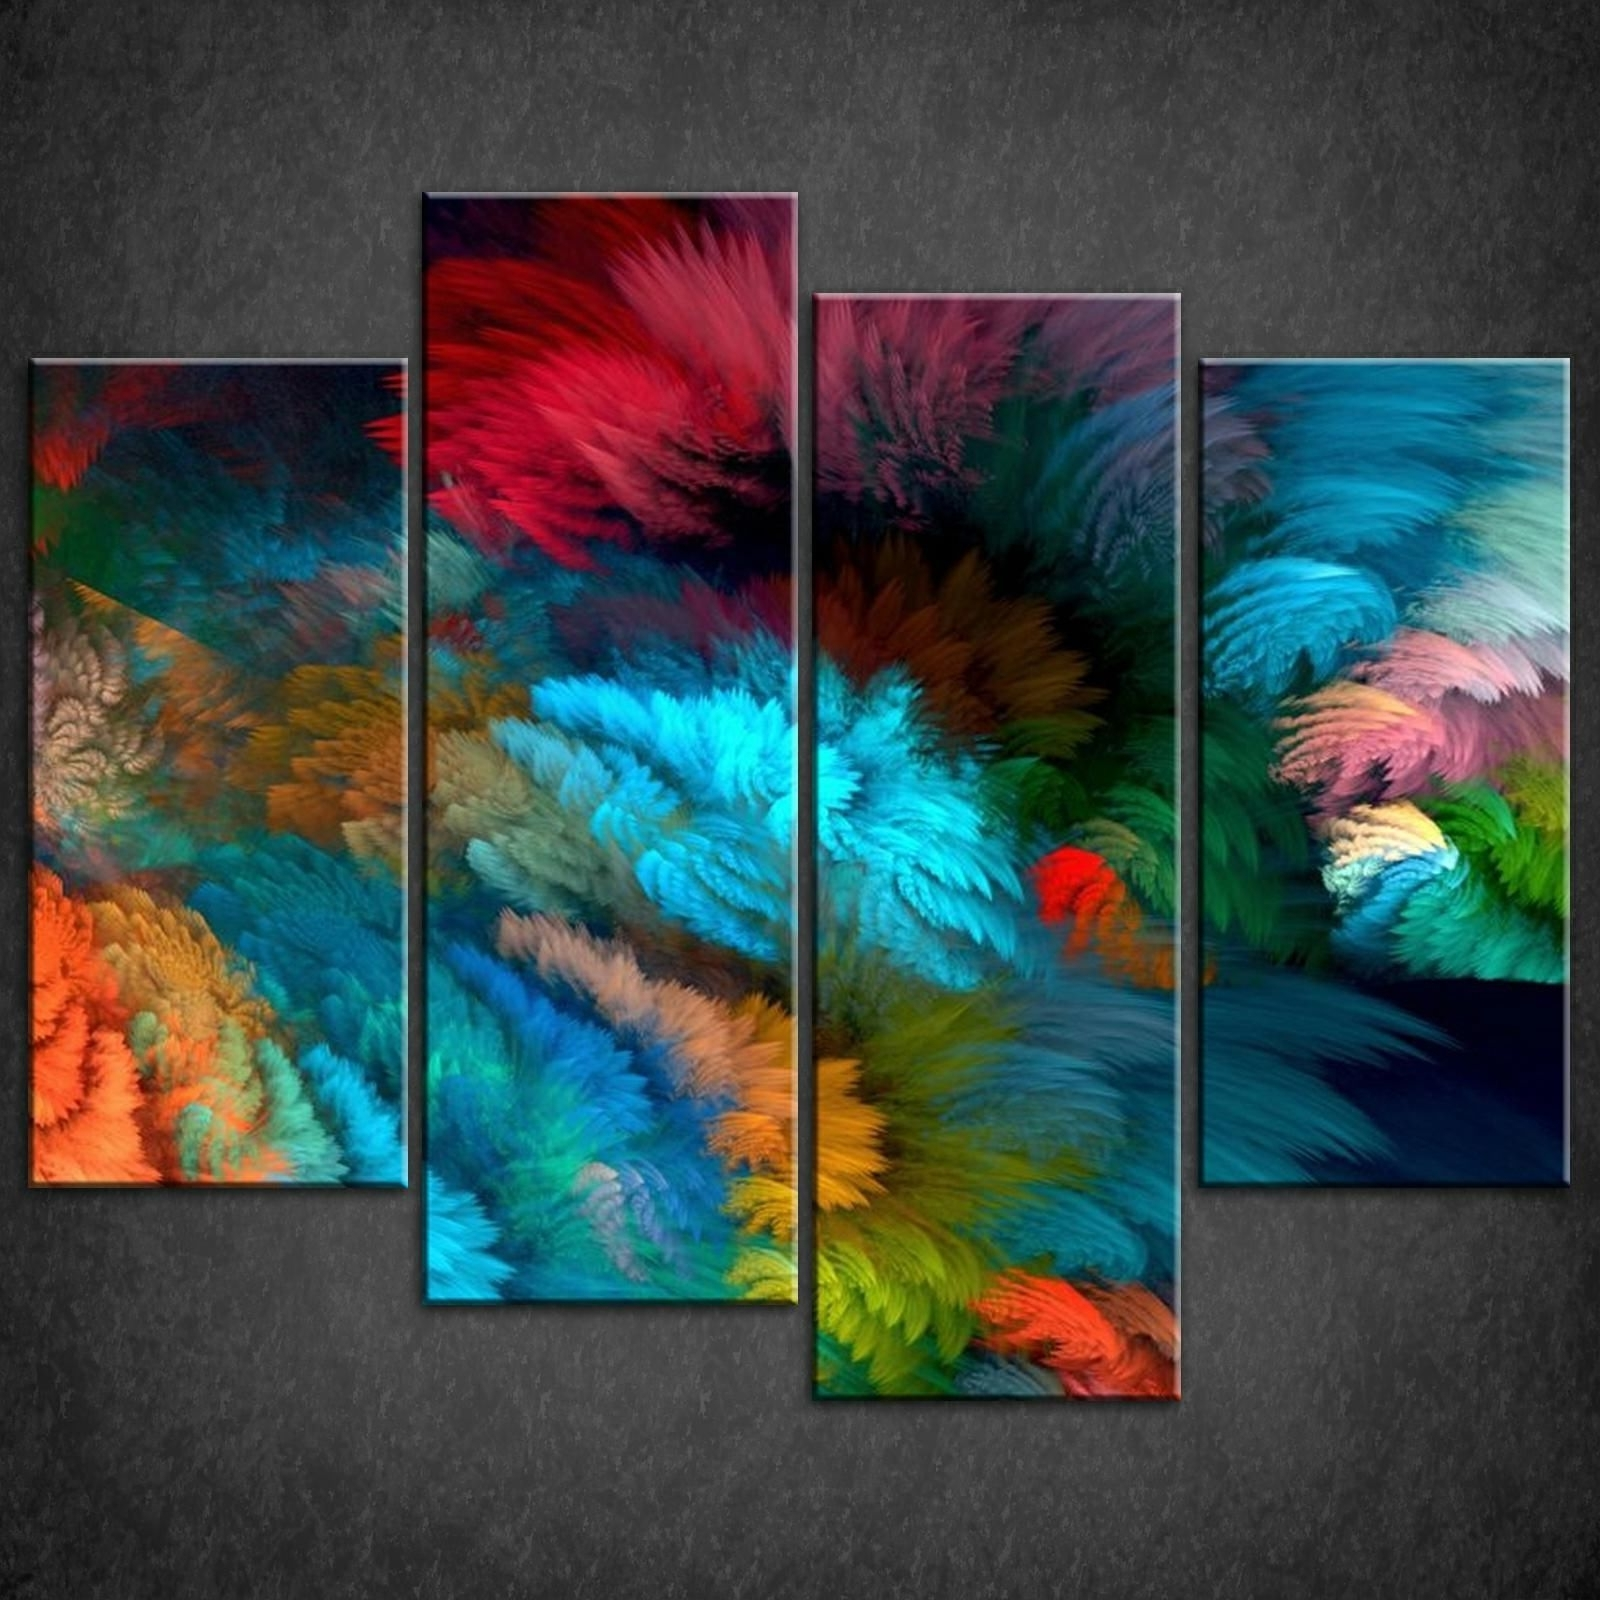 Widely Used Abstract Canvas Wall Art With Regard To Abstract Painting Picture Canvas Wall Art (View 15 of 15)